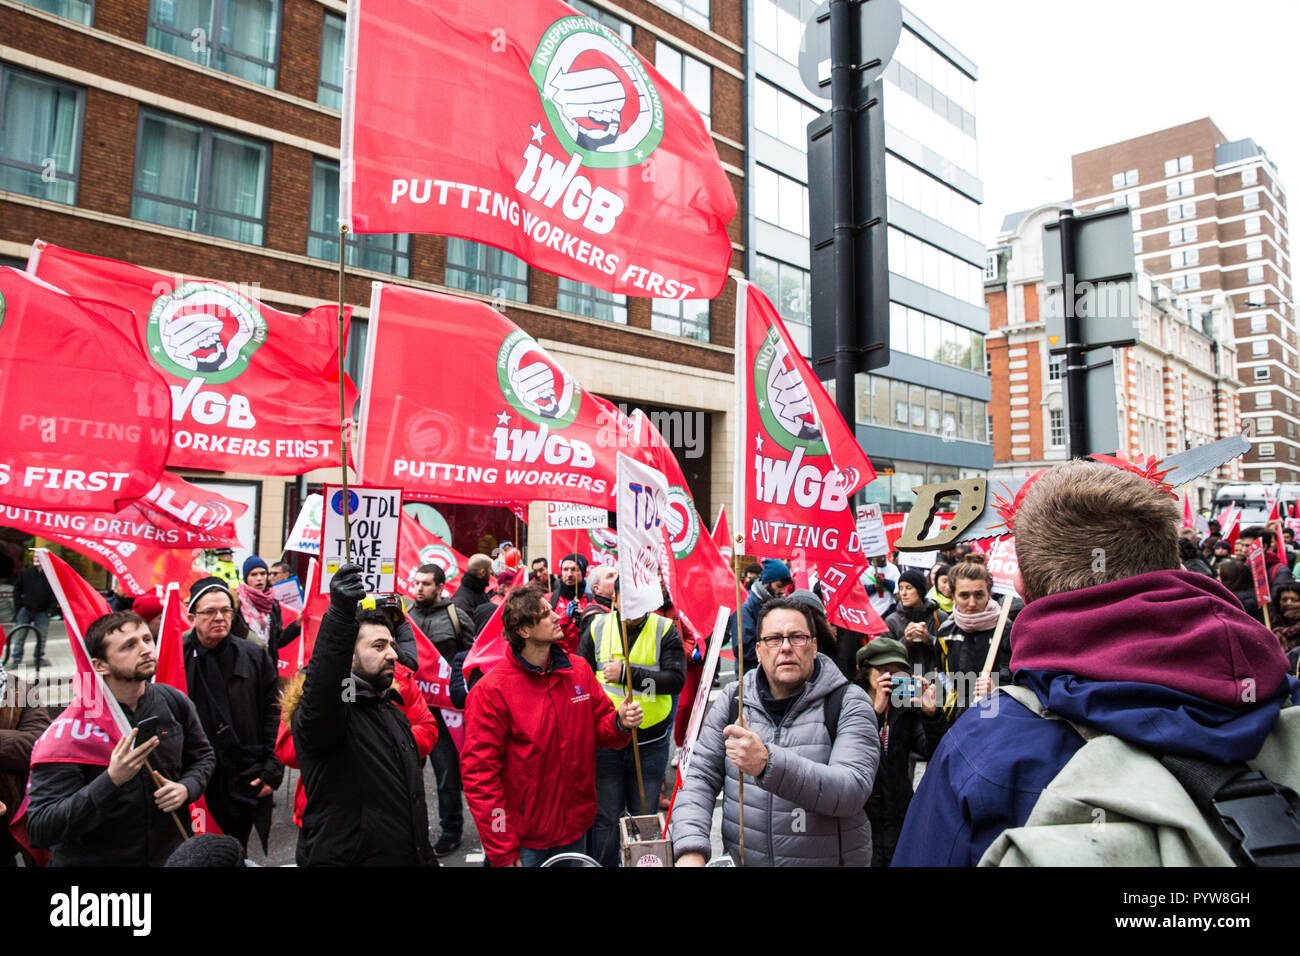 London, UK. 30th October, 2018. Mags Dewhurst, Vice-President of the Independent Workers of Great Britain (IWGB) trade union addresses members, supporters and precarious workers after a march from the offices of Transport for London to the University of London via the Court of Appeal in support of Uber drivers who are seeking employment rights. The Court of Appeal will today hear an appeal by Uber against a ruling that its drivers are employees rather than self-employed workers. Credit: Mark Kerrison/Alamy Live News - Stock Image